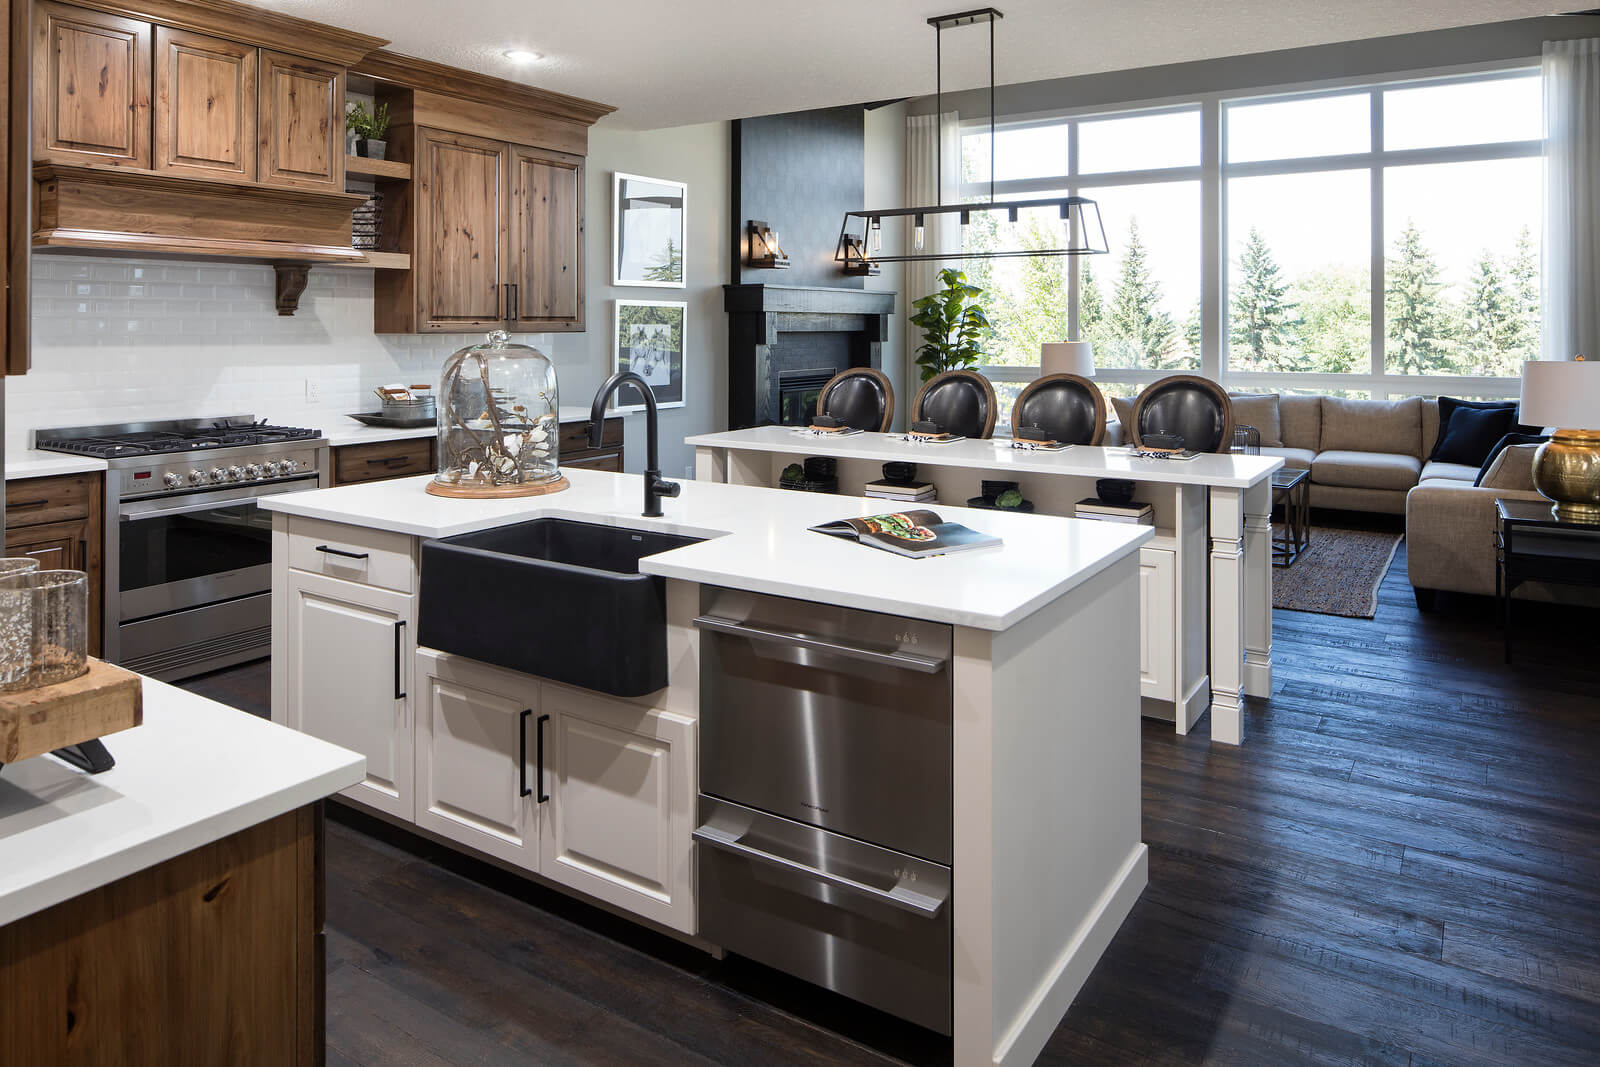 New Calgary  Model Home Selkirk 2 in Shawnee Park, located at 334 SHAWNEE BOULEVARD SW  Built By Cardel Homes Calgary